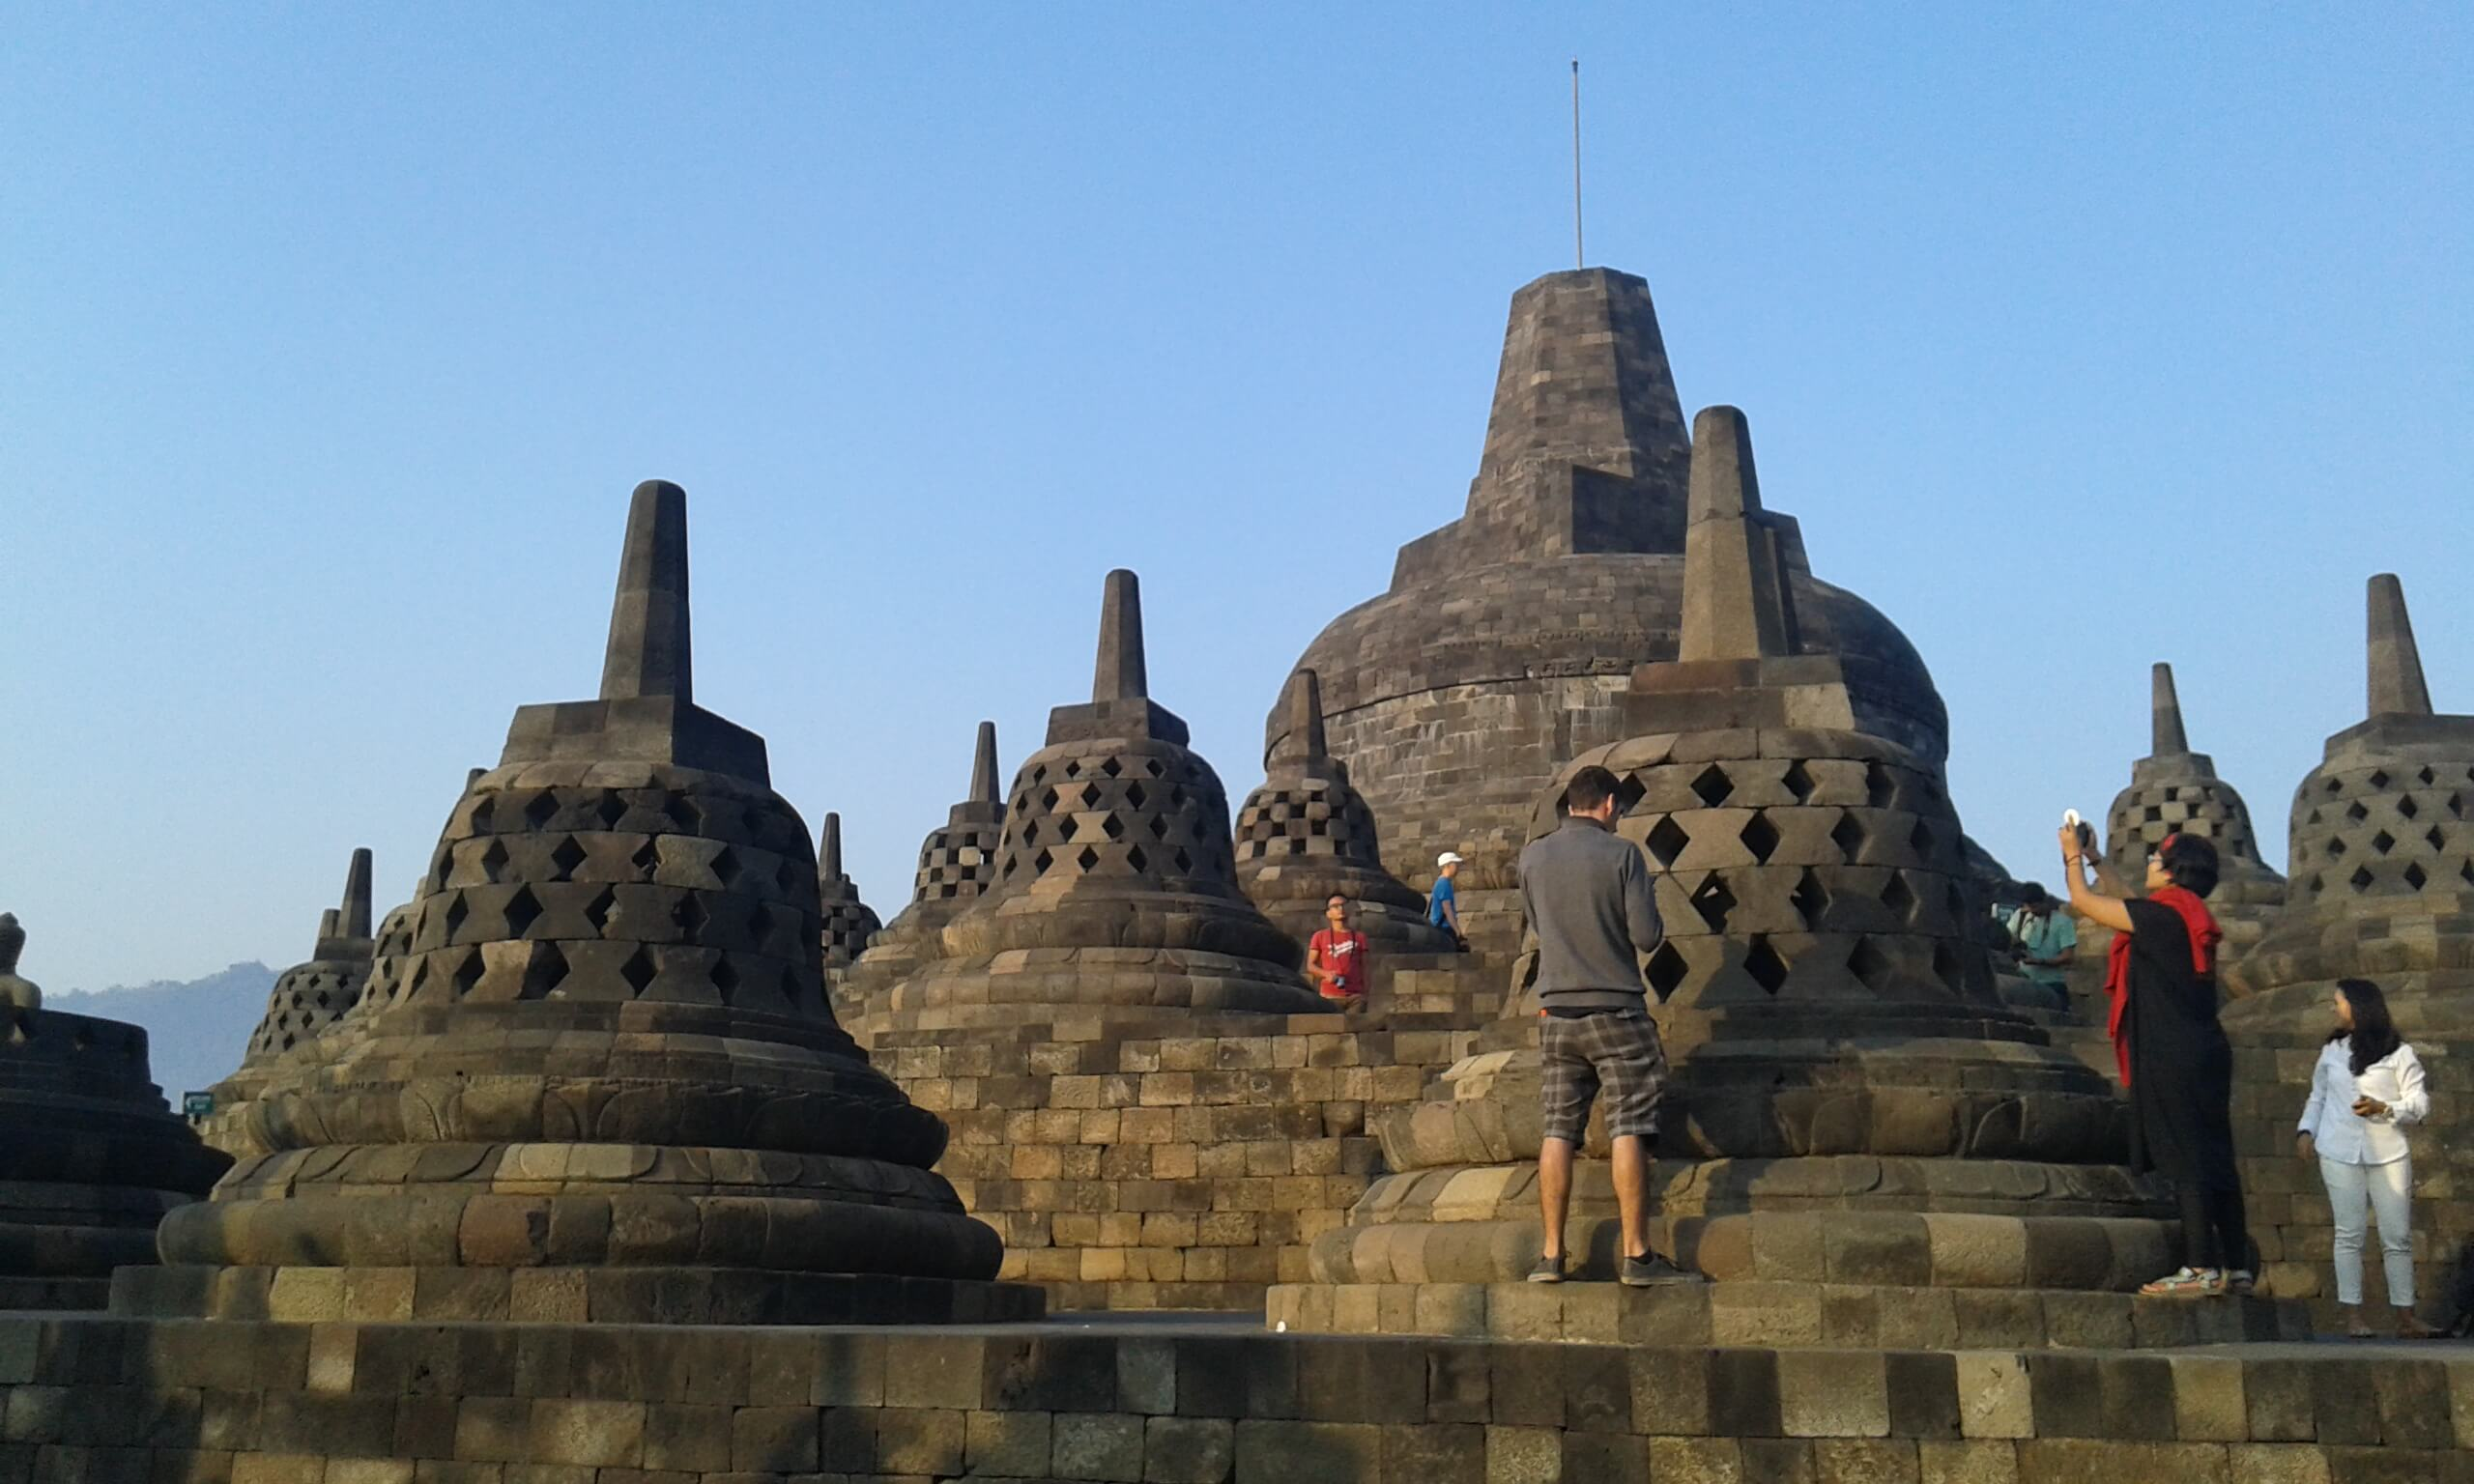 Stupa at third level of Borobudur temple